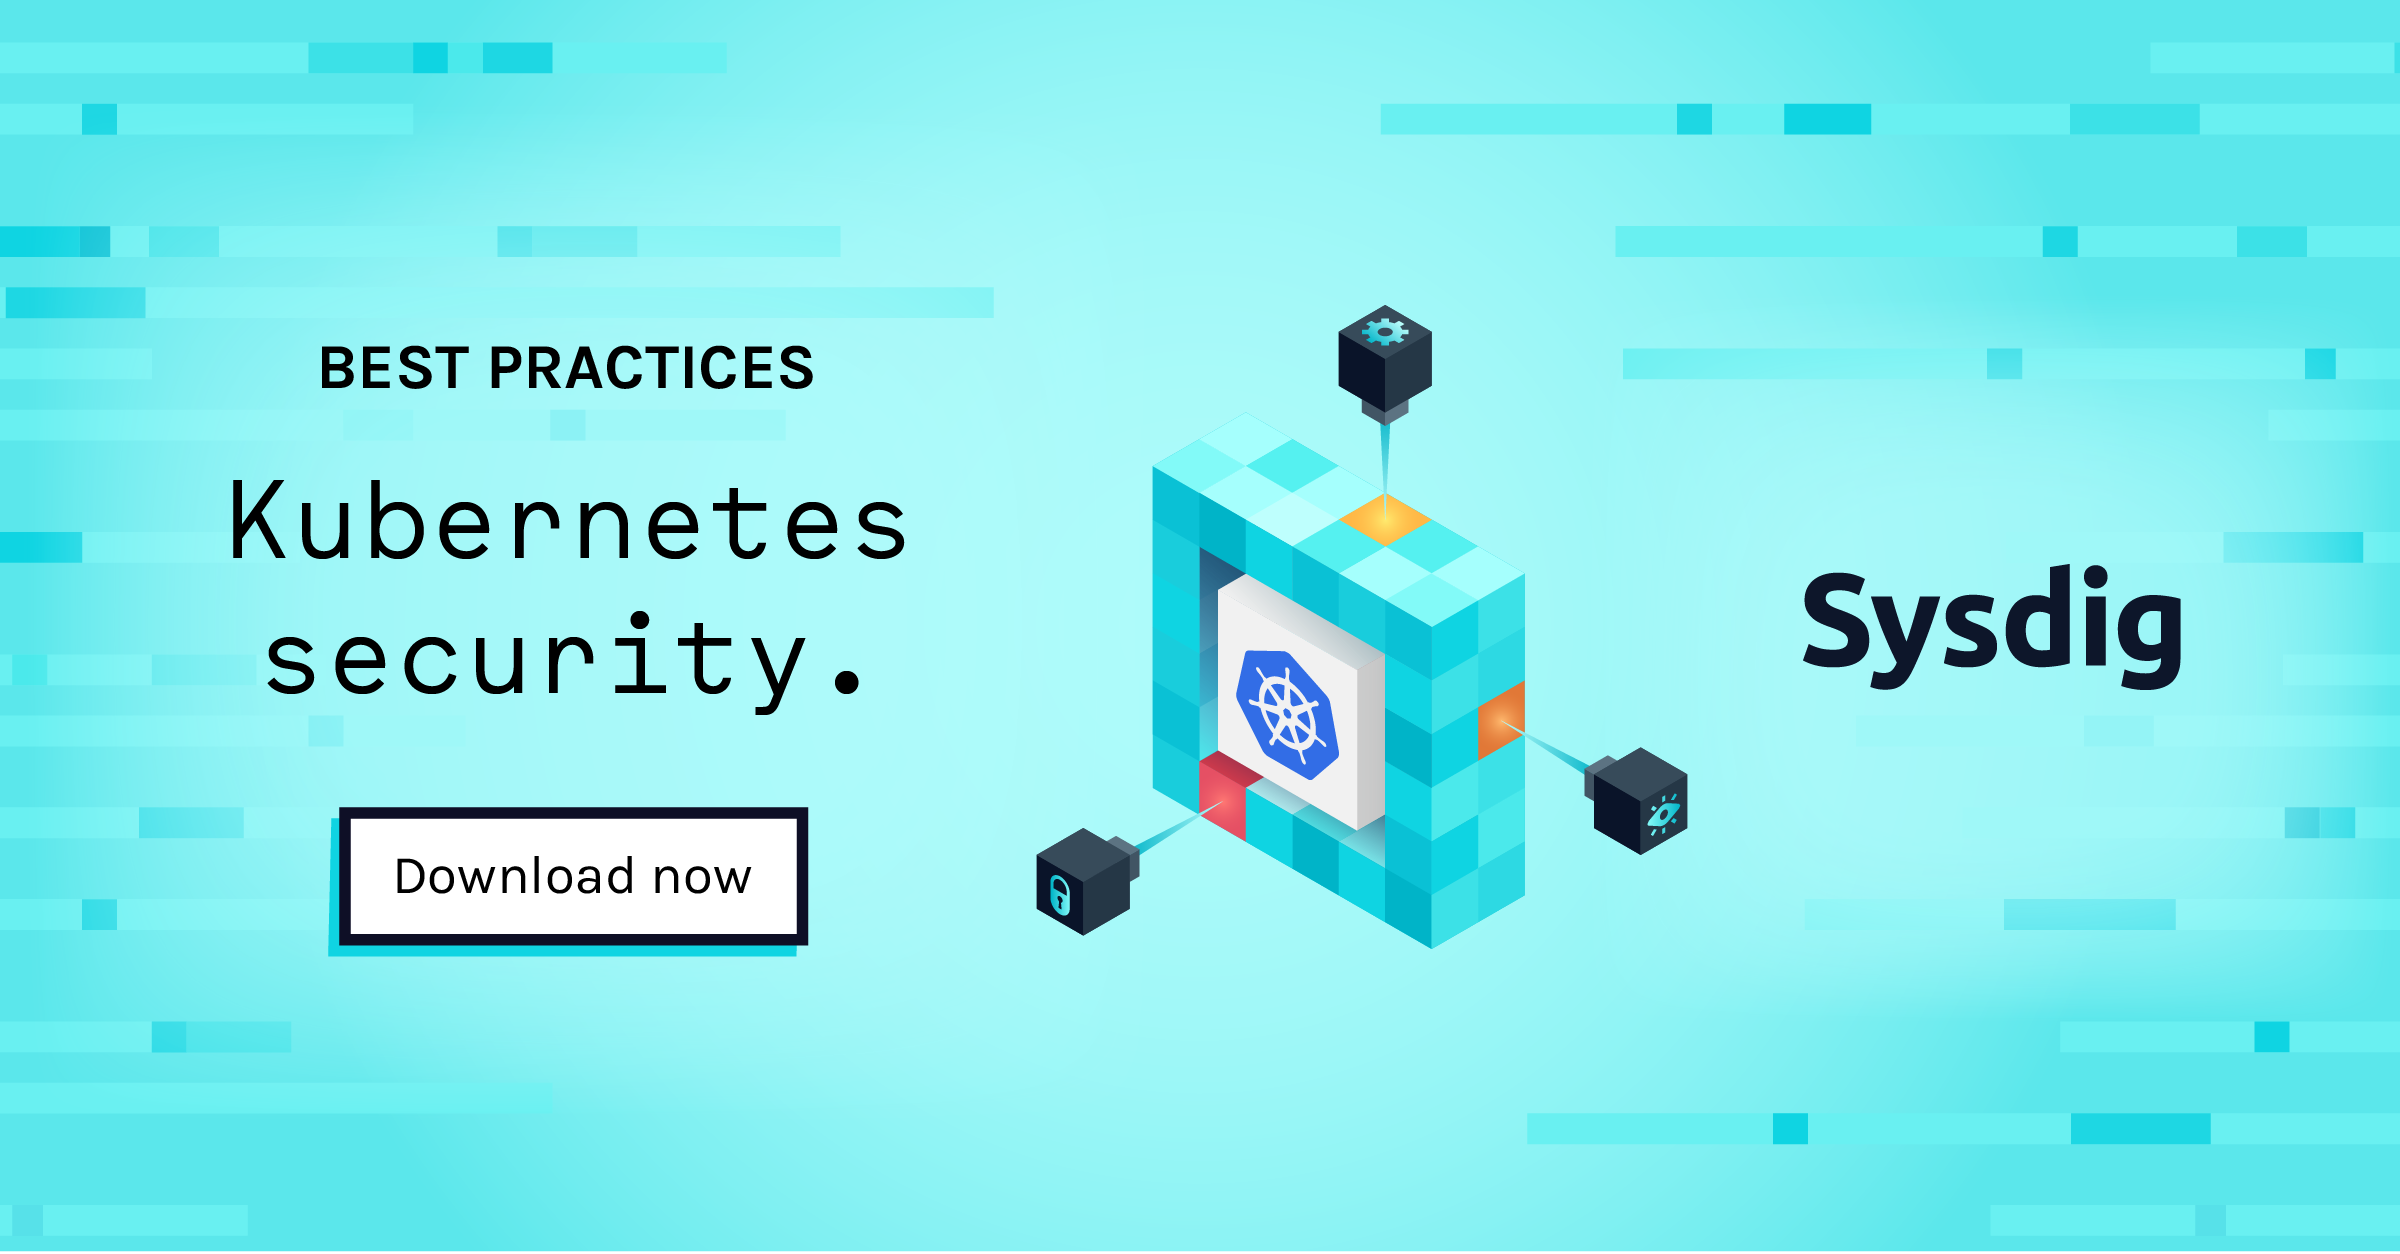 Best practices for Kubernetes Security for LinkedIn